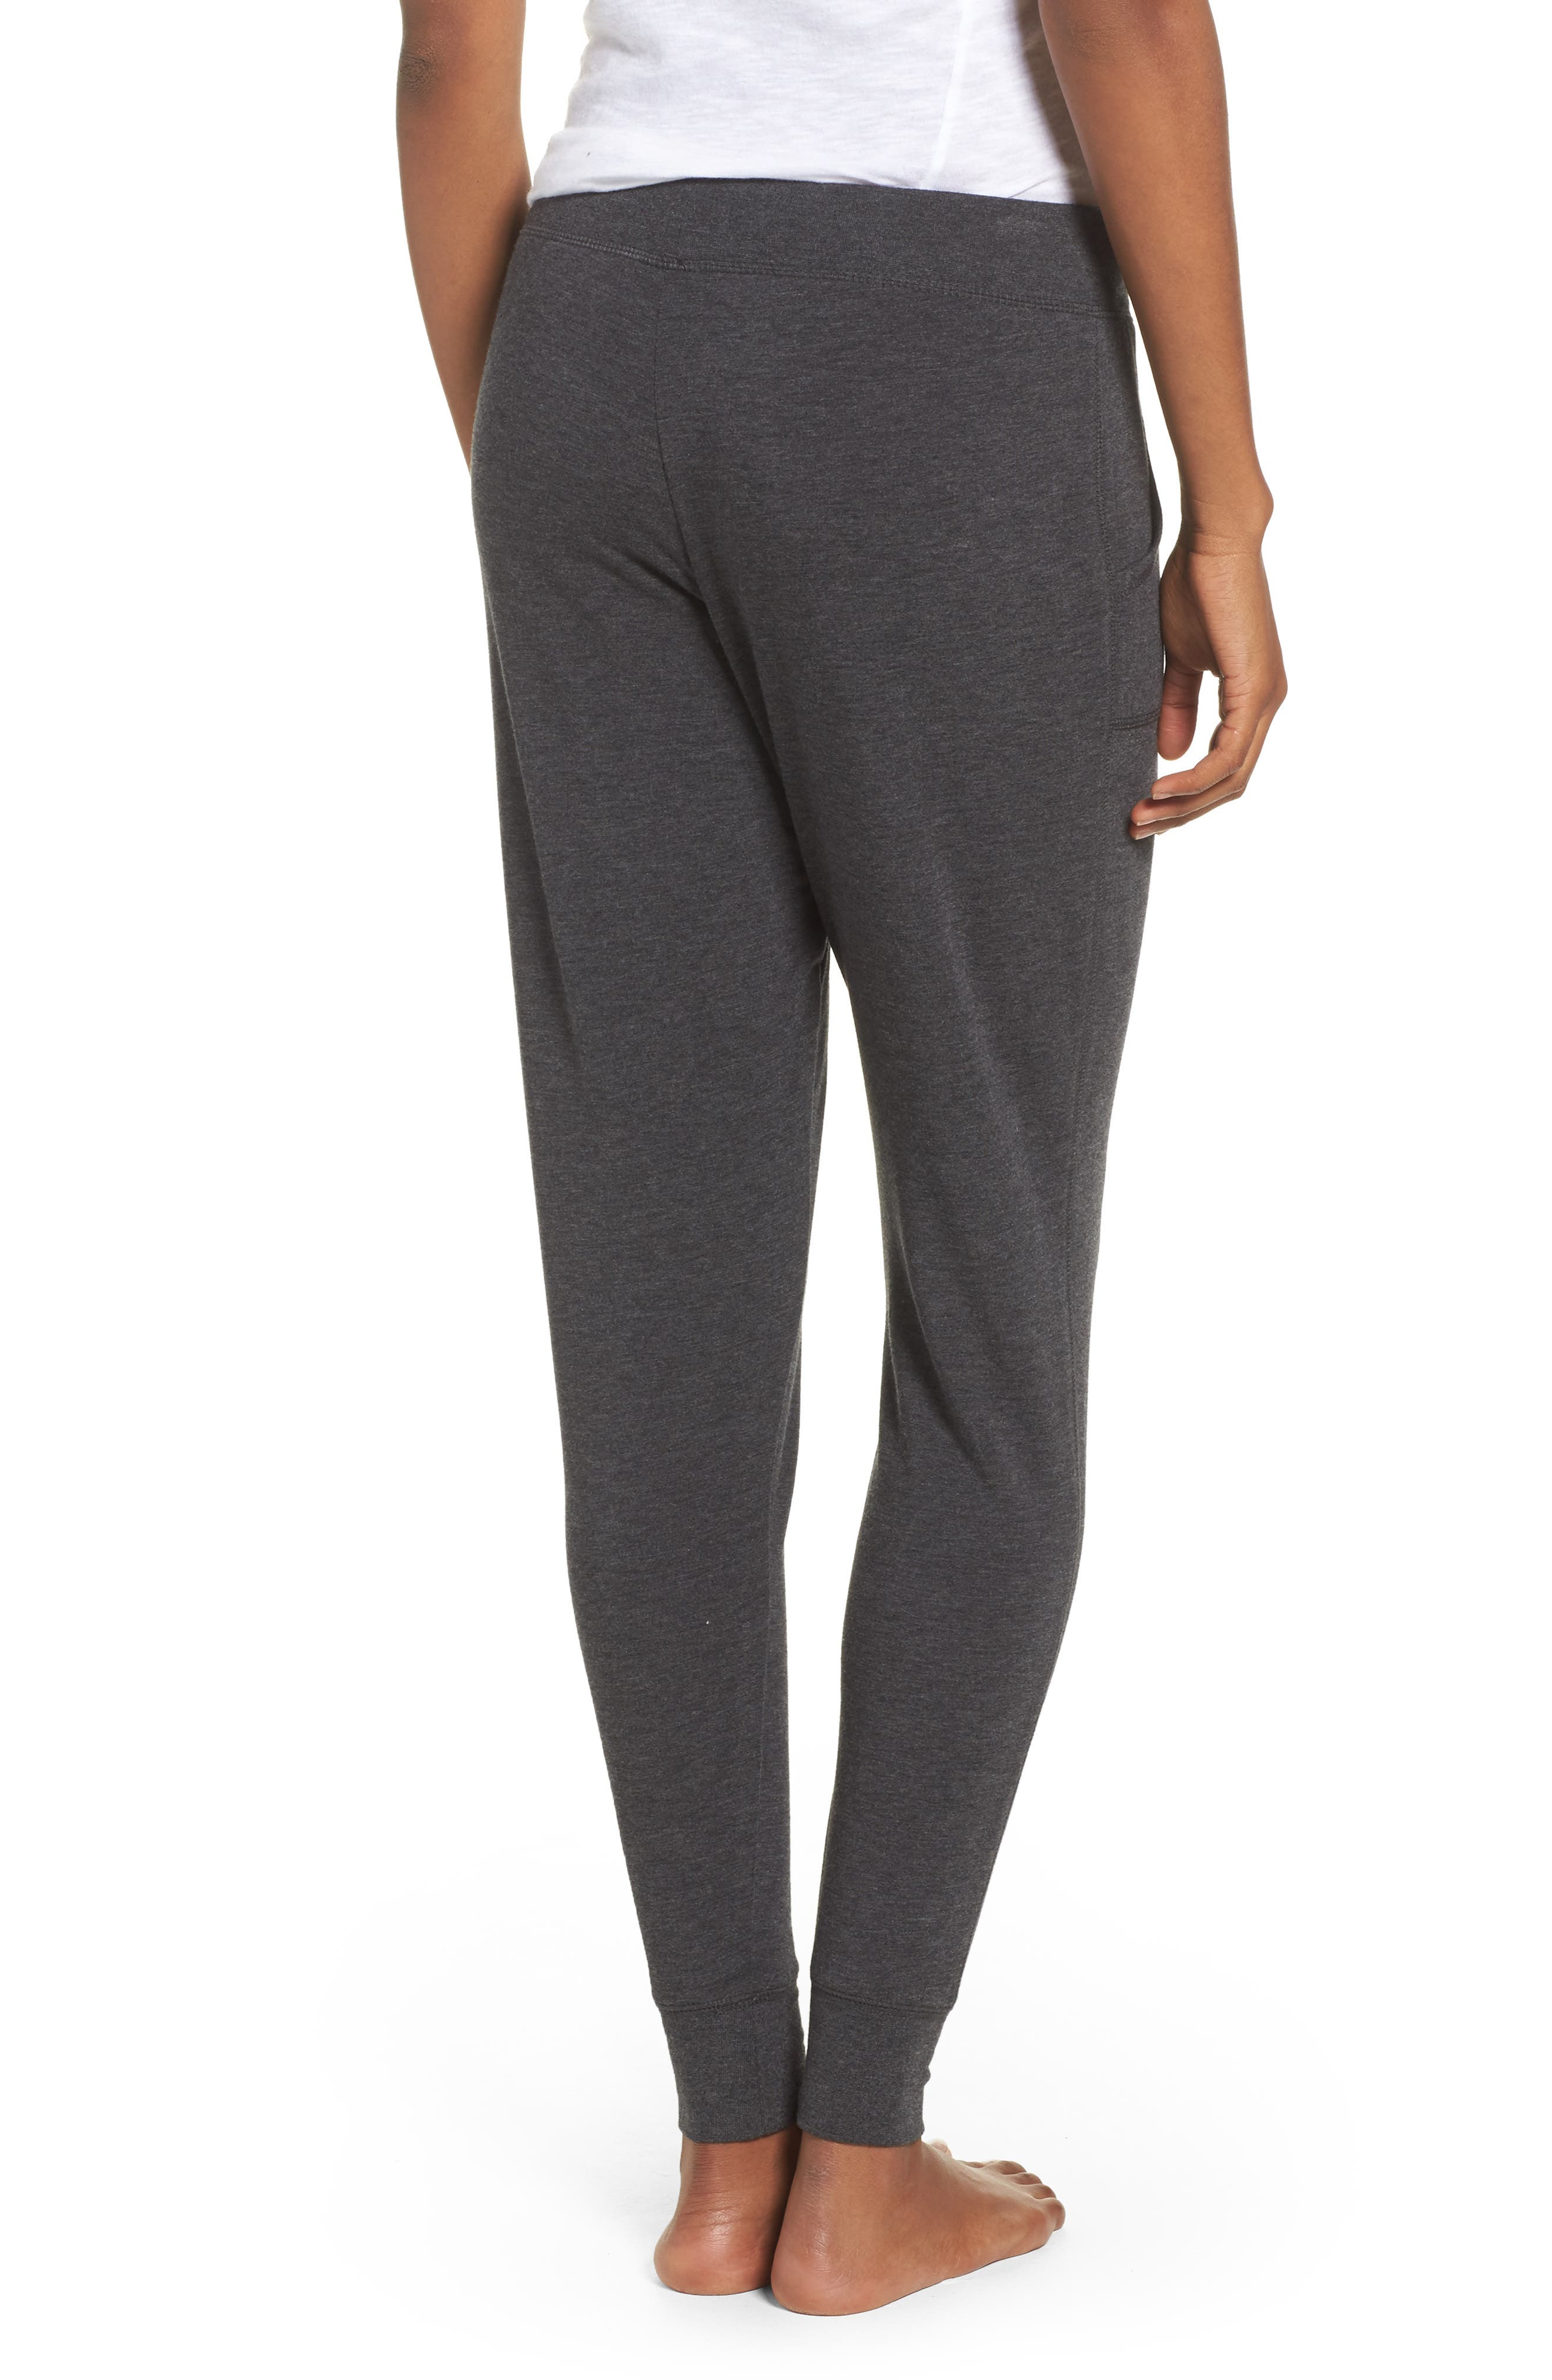 All About It Lounge Pants,                             Alternate thumbnail 8, color,